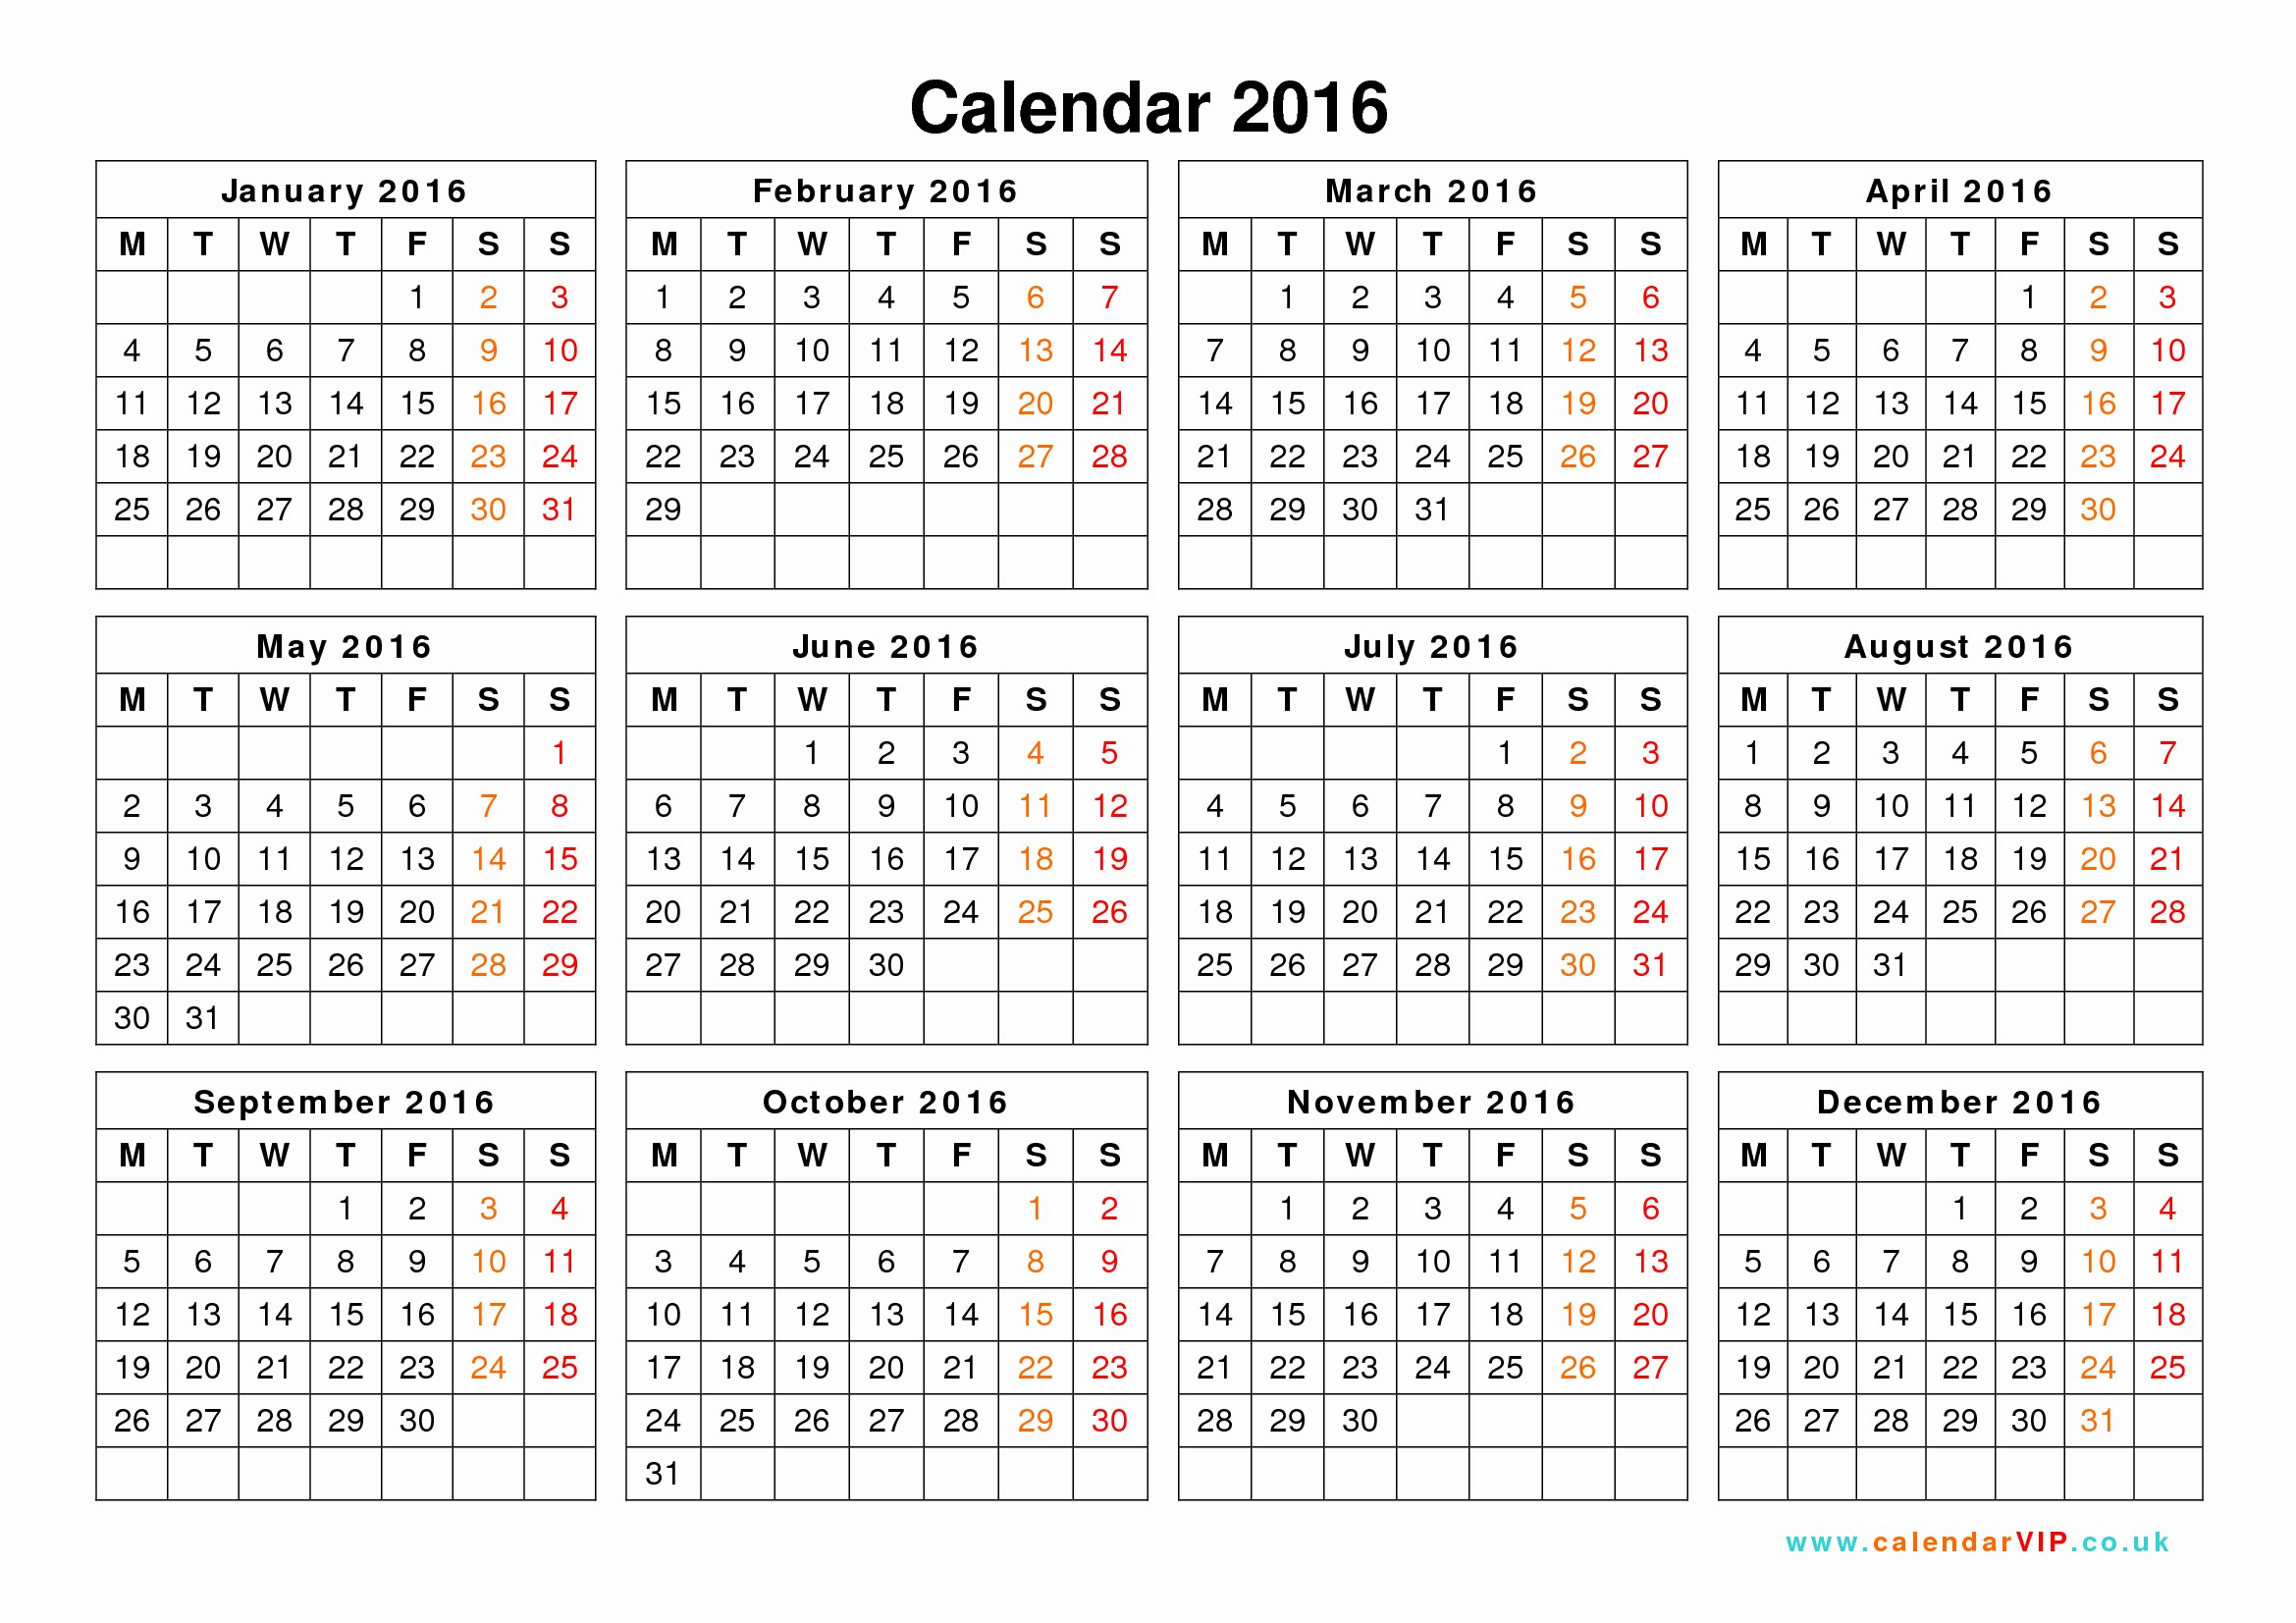 Calendar 2016 Printable with Holidays Best Of Beautiful 2016 Printable Calendar with Holidays